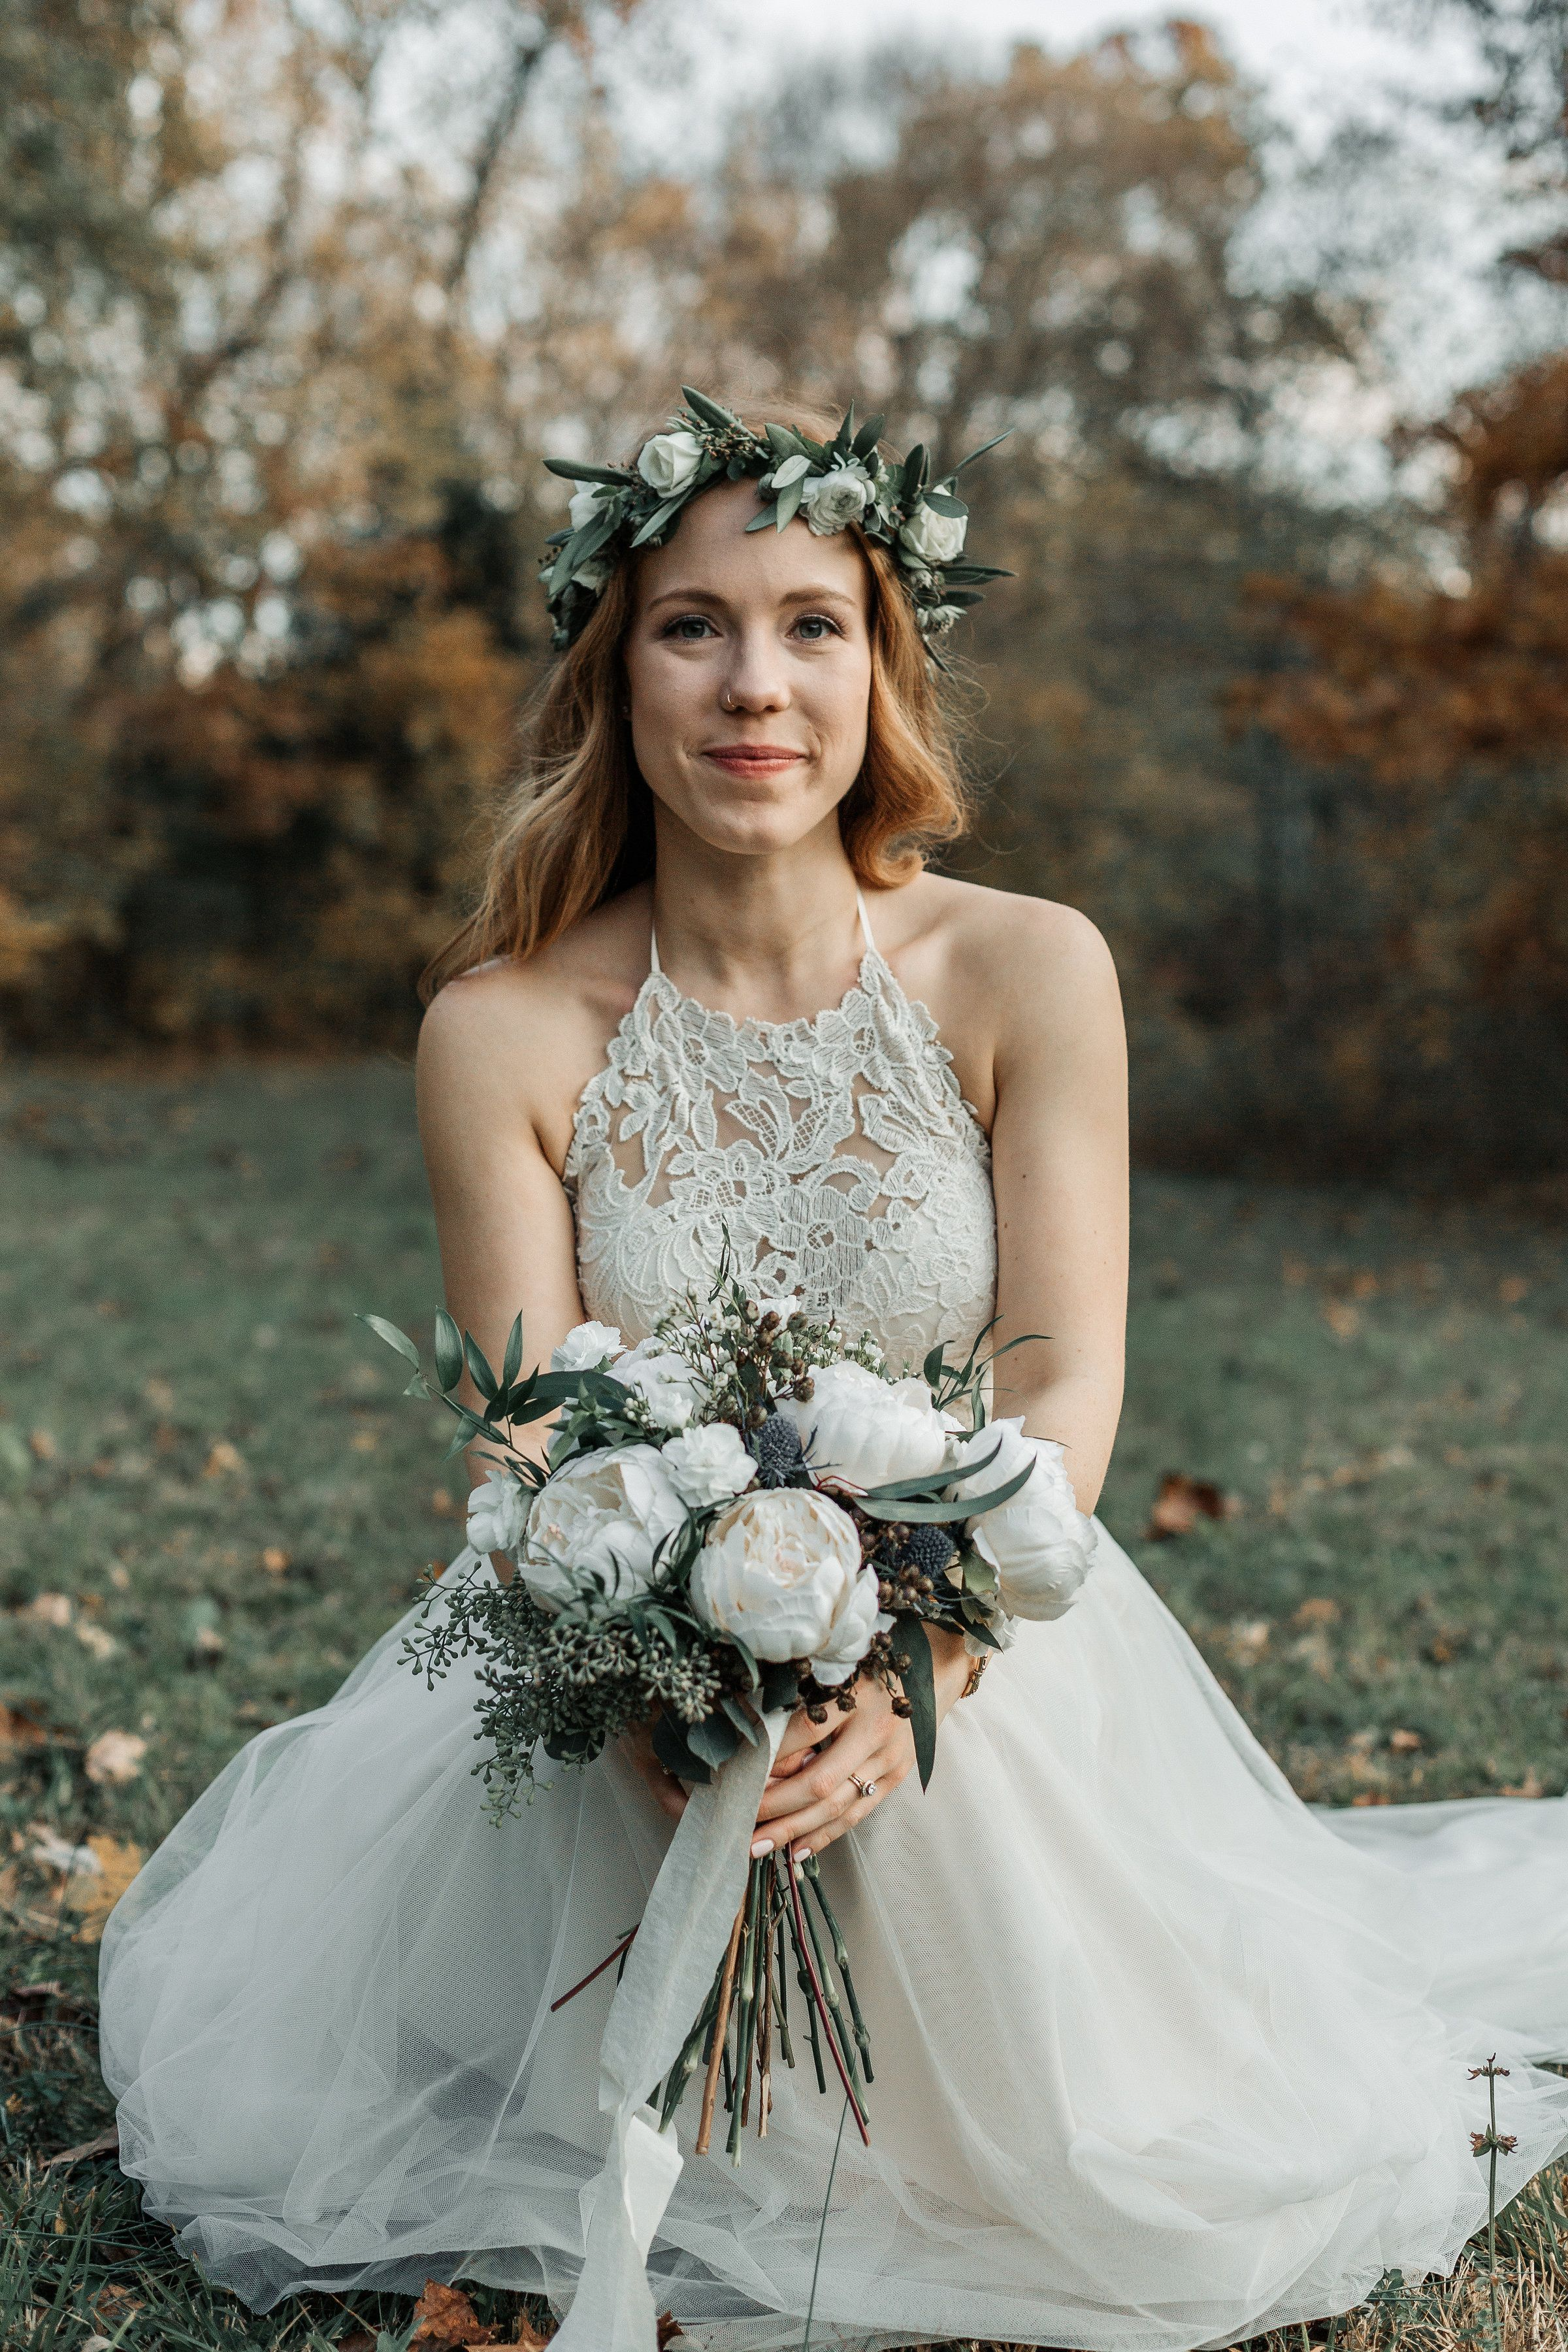 Bhldn wedding dress flower crown november wedding fall wedding bhldn wedding dress flower crown november wedding fall wedding tennessee wedding ombrellifo Image collections